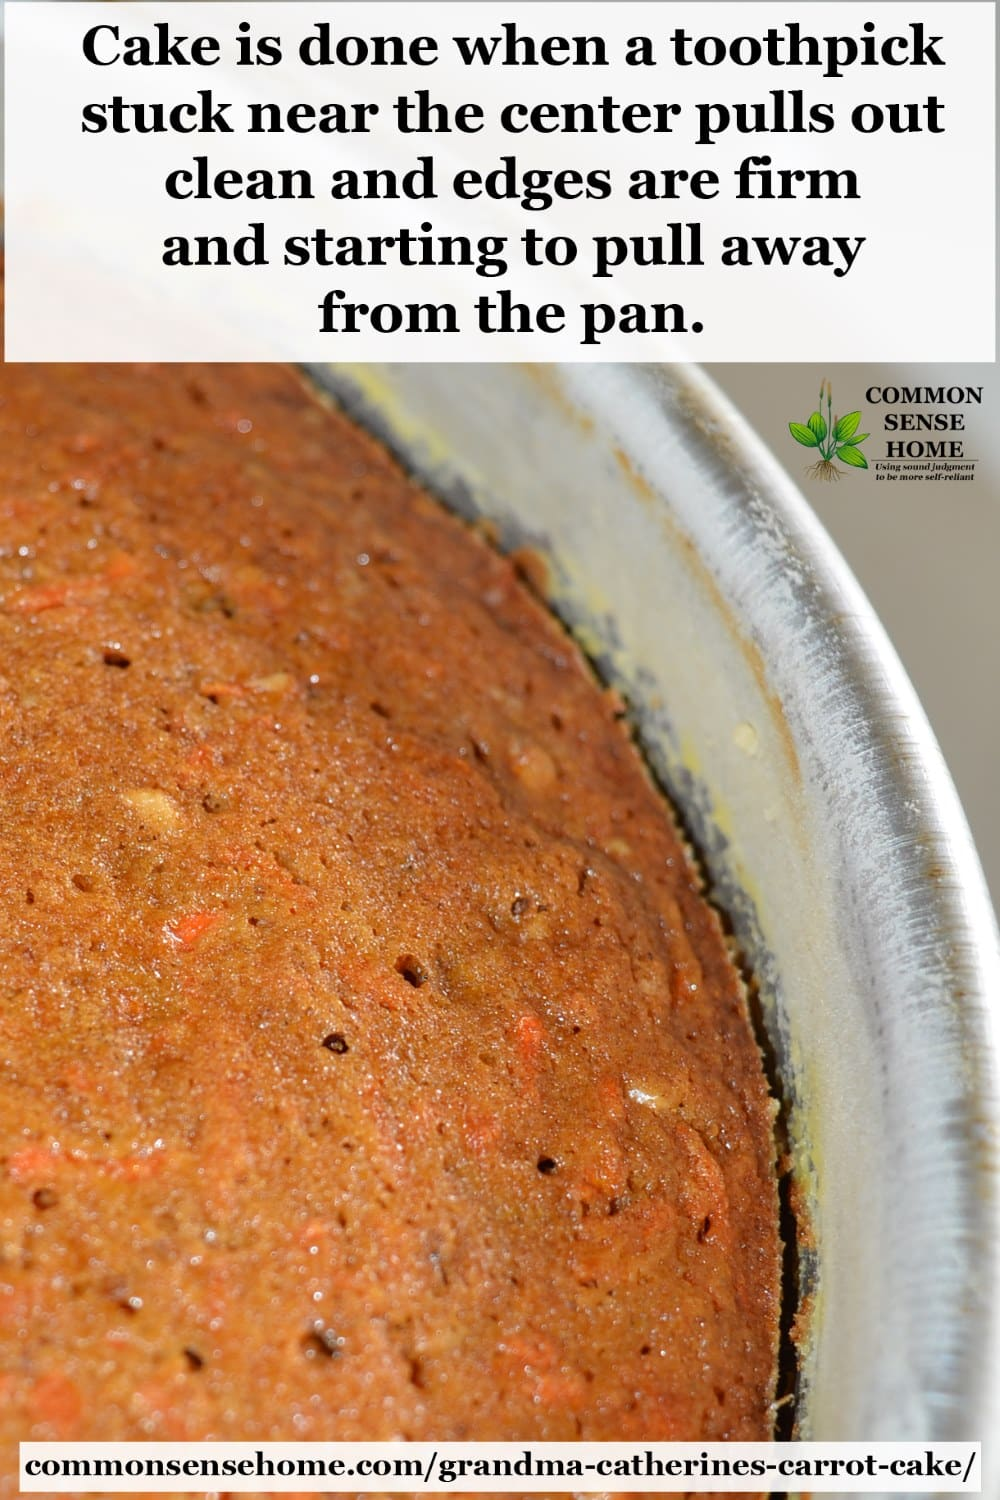 "closeup of freshly baked carrot cake in pan - text overlay ""Cake is done when a toothpick stuck near the center pulls out clean and the edges are firm and starting to pull away from the pan."""